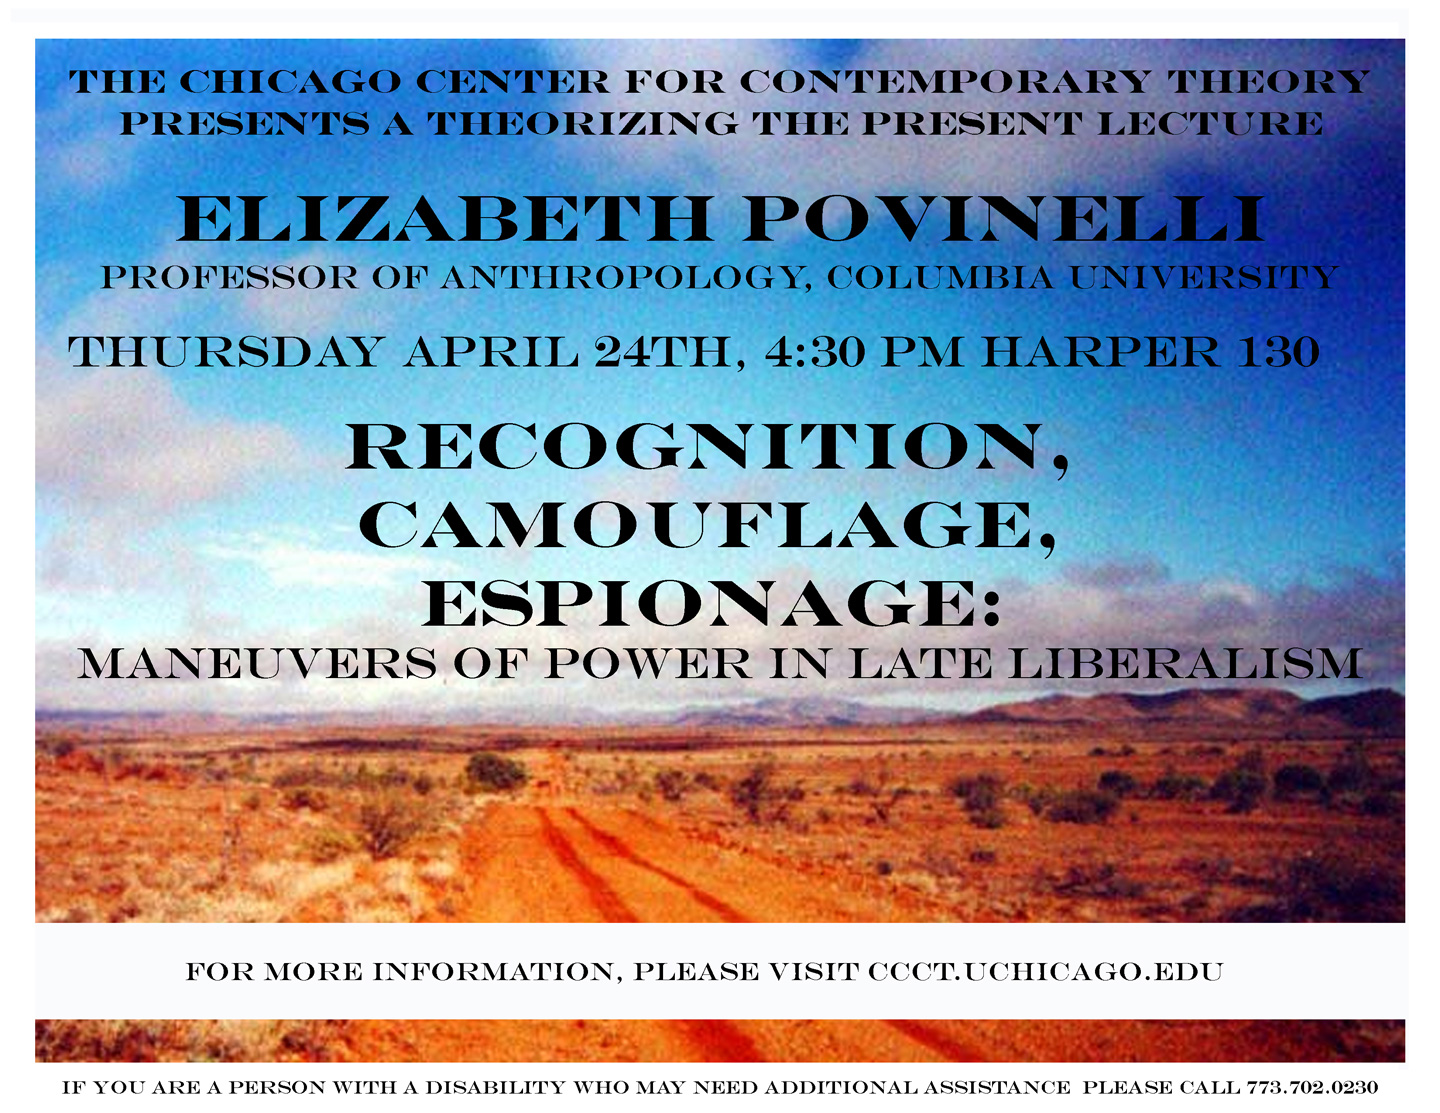 poster for 2008 Povinelli lecture at 3CT showing a wide view over a desert under a cloud-specked blue sky